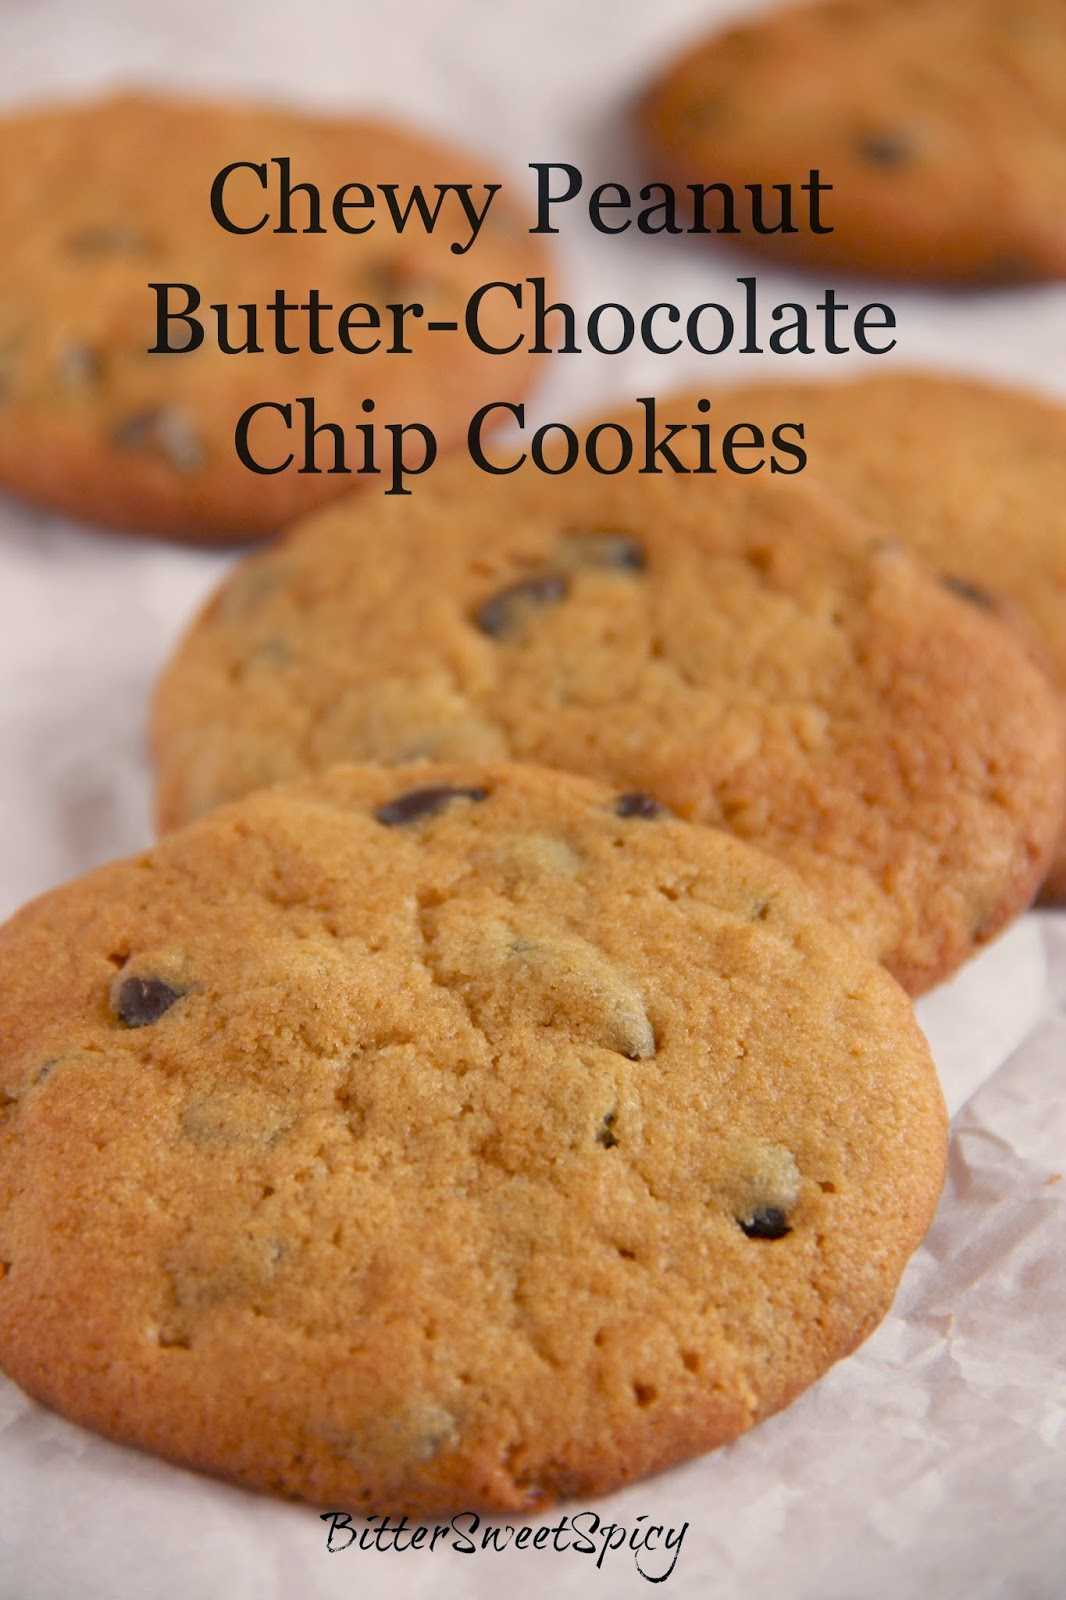 Chewy Peanut Butter-Chocolate Chip Cookies @ BitterSweetSpicy